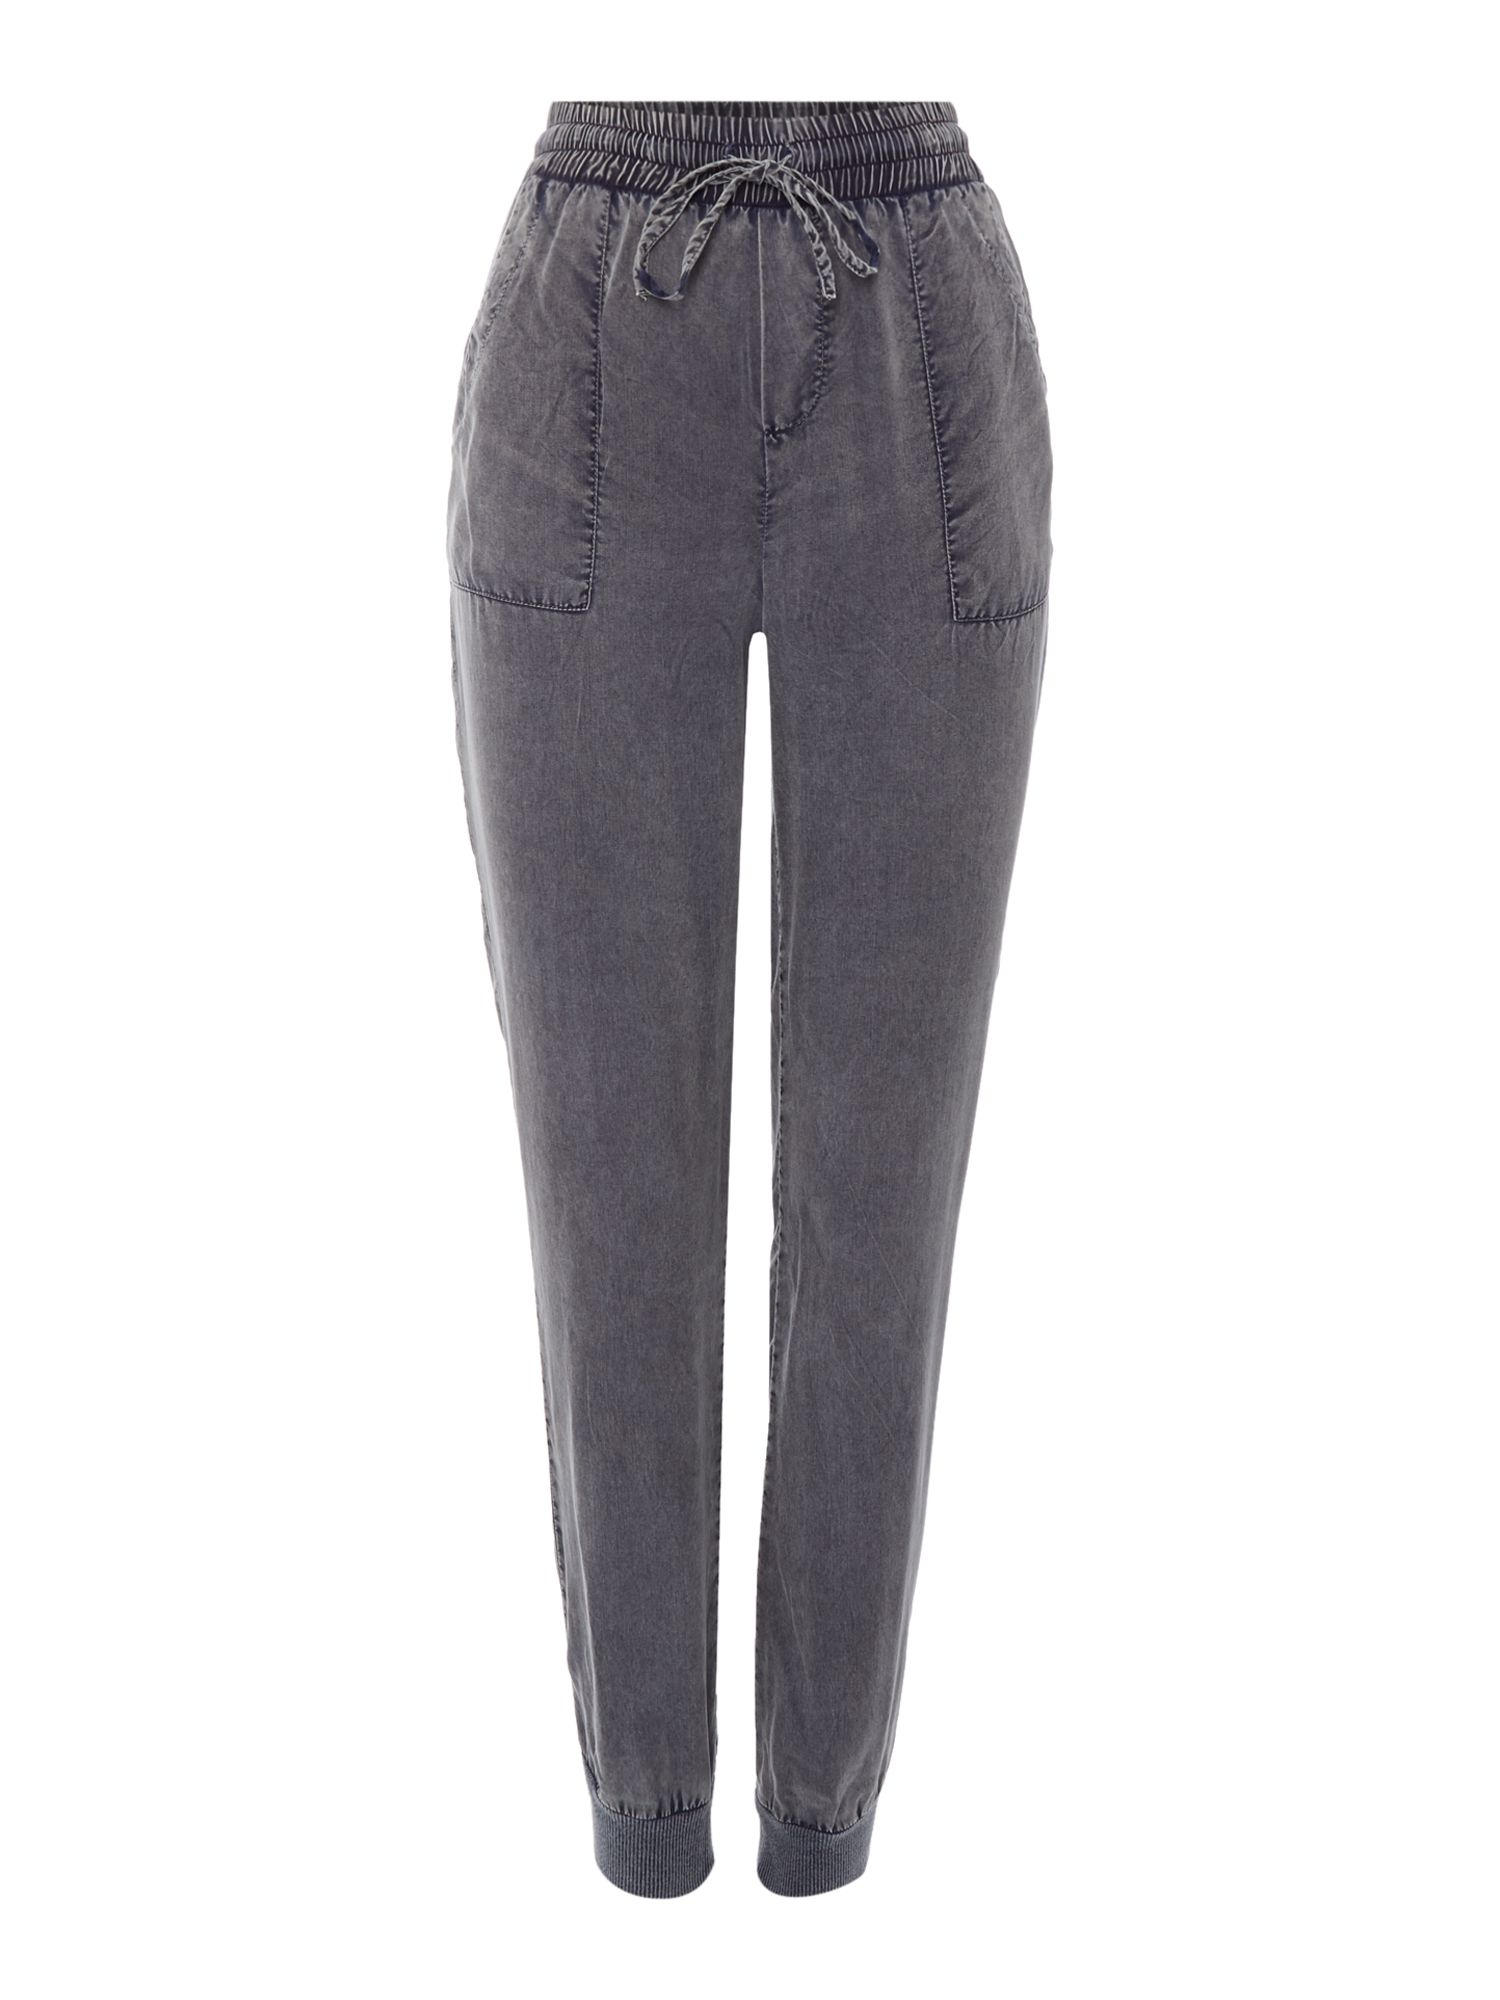 Label Lab Label Lab Utility detail easy trouser, Charcoal